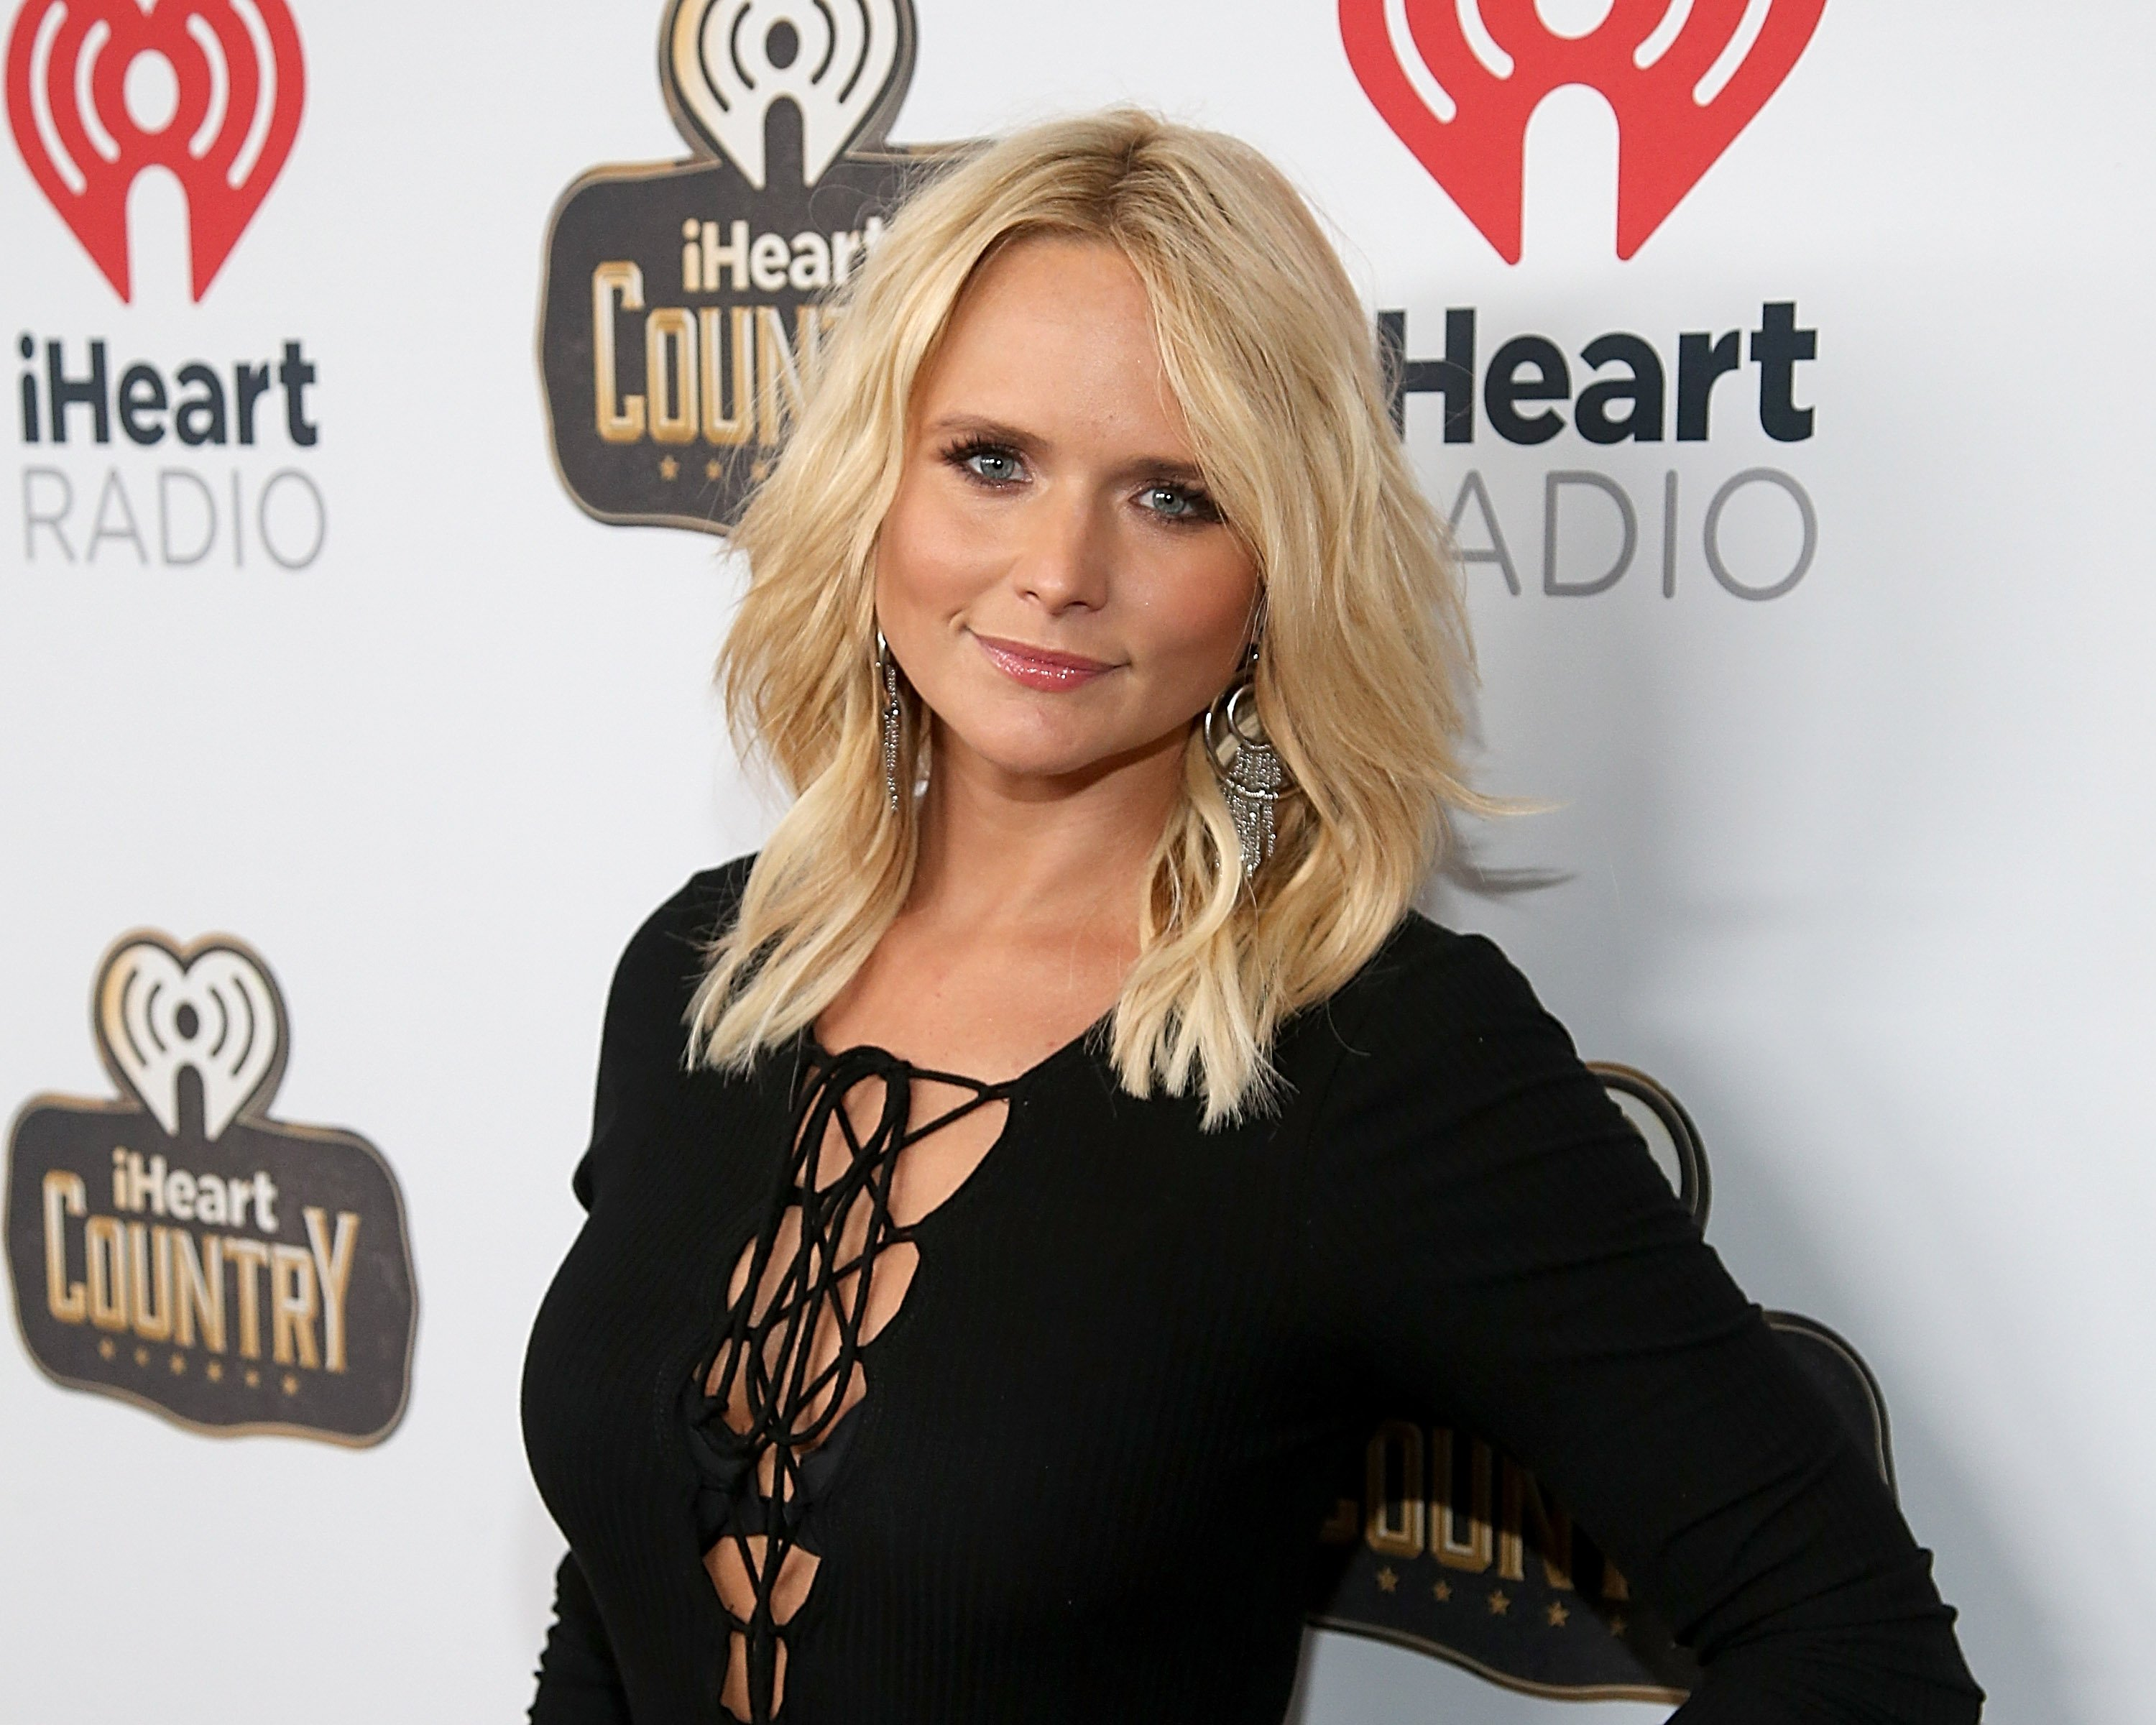 Miranda Lambert pictured at the iHeartCountry Festival at The Frank Erwin Center, 2016.   Photo: Getty Images